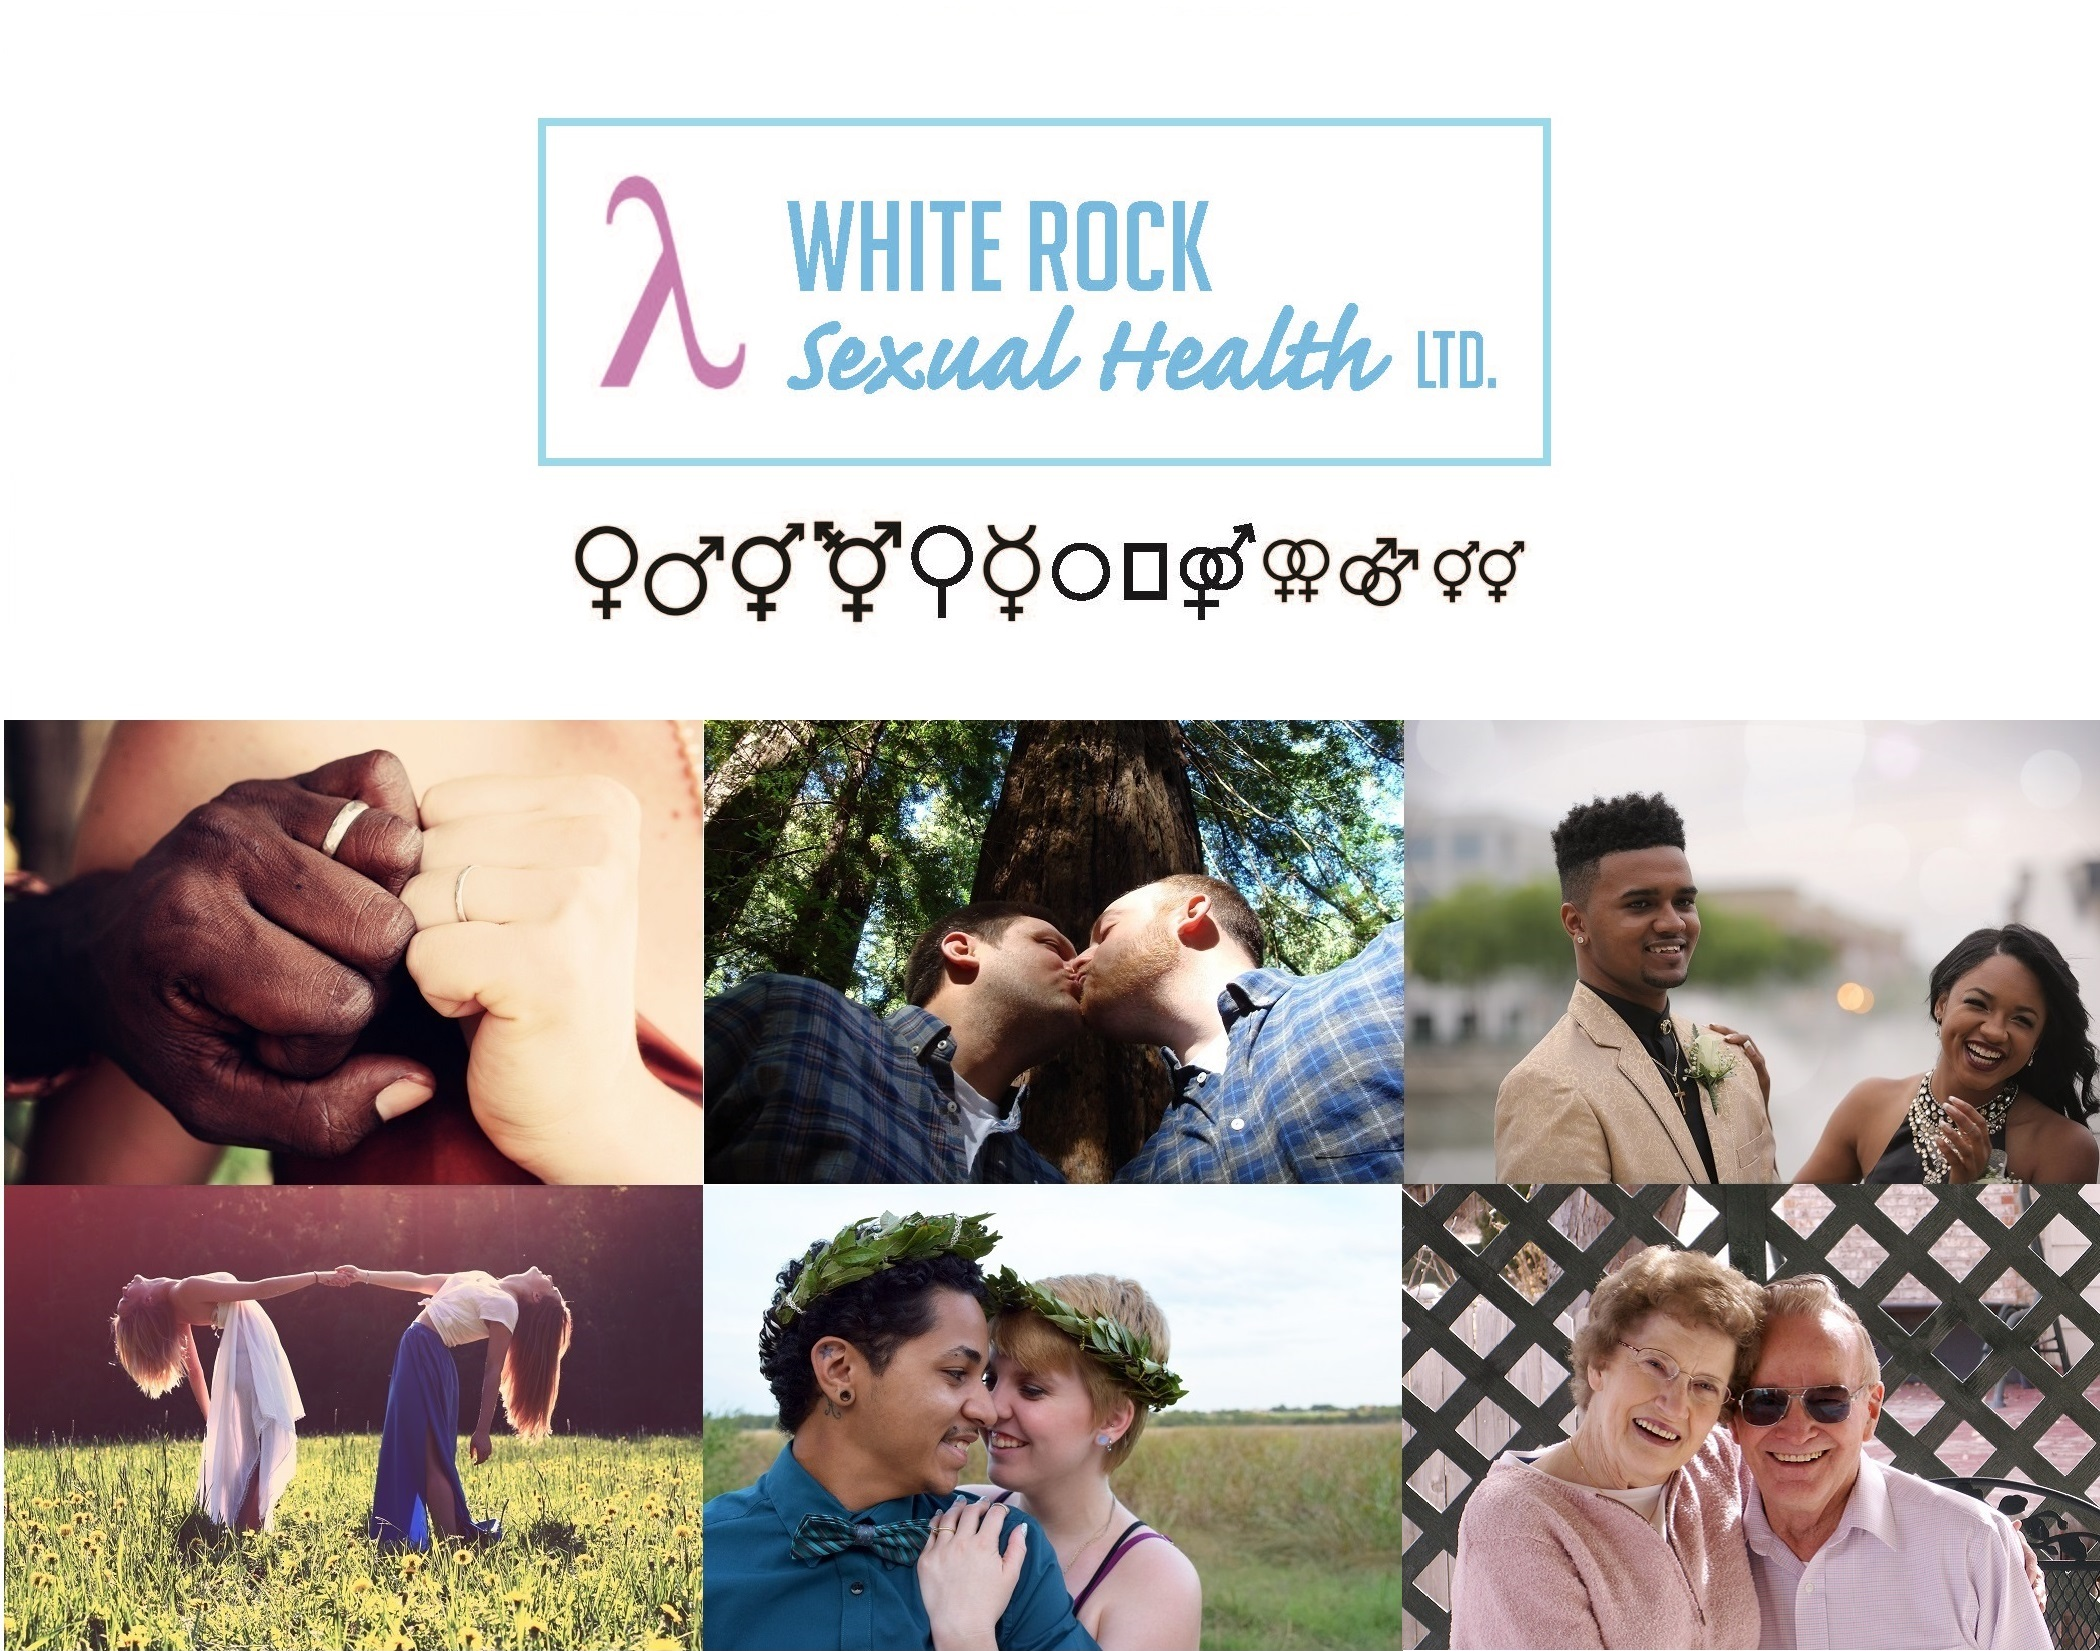 White Rock Sexual Health Ltd.